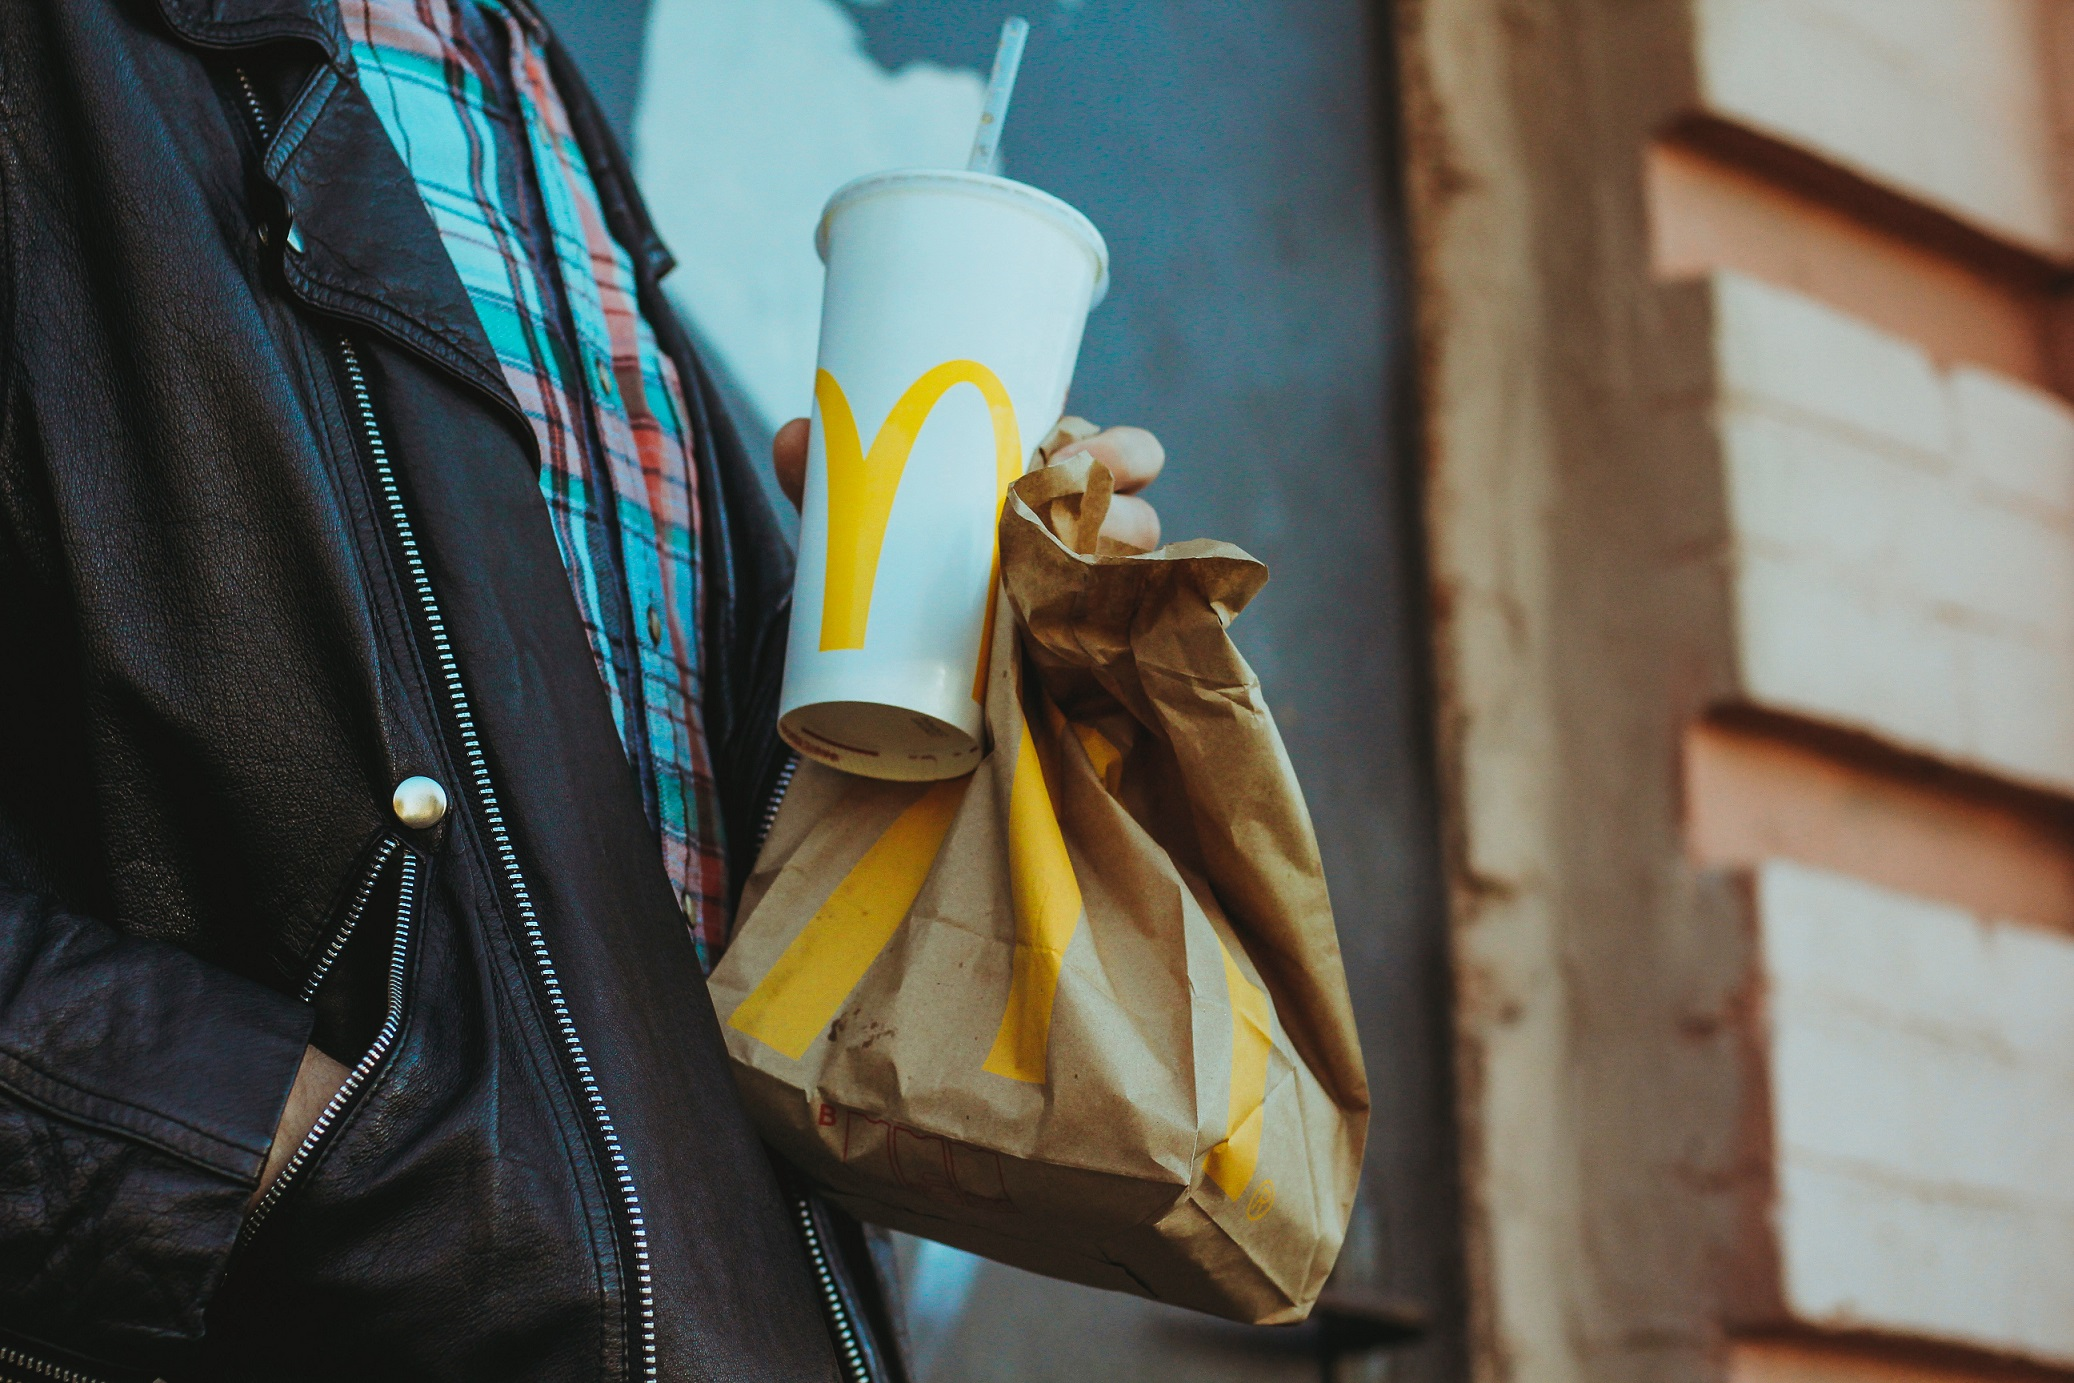 Guy holding McDonald's bag and cup